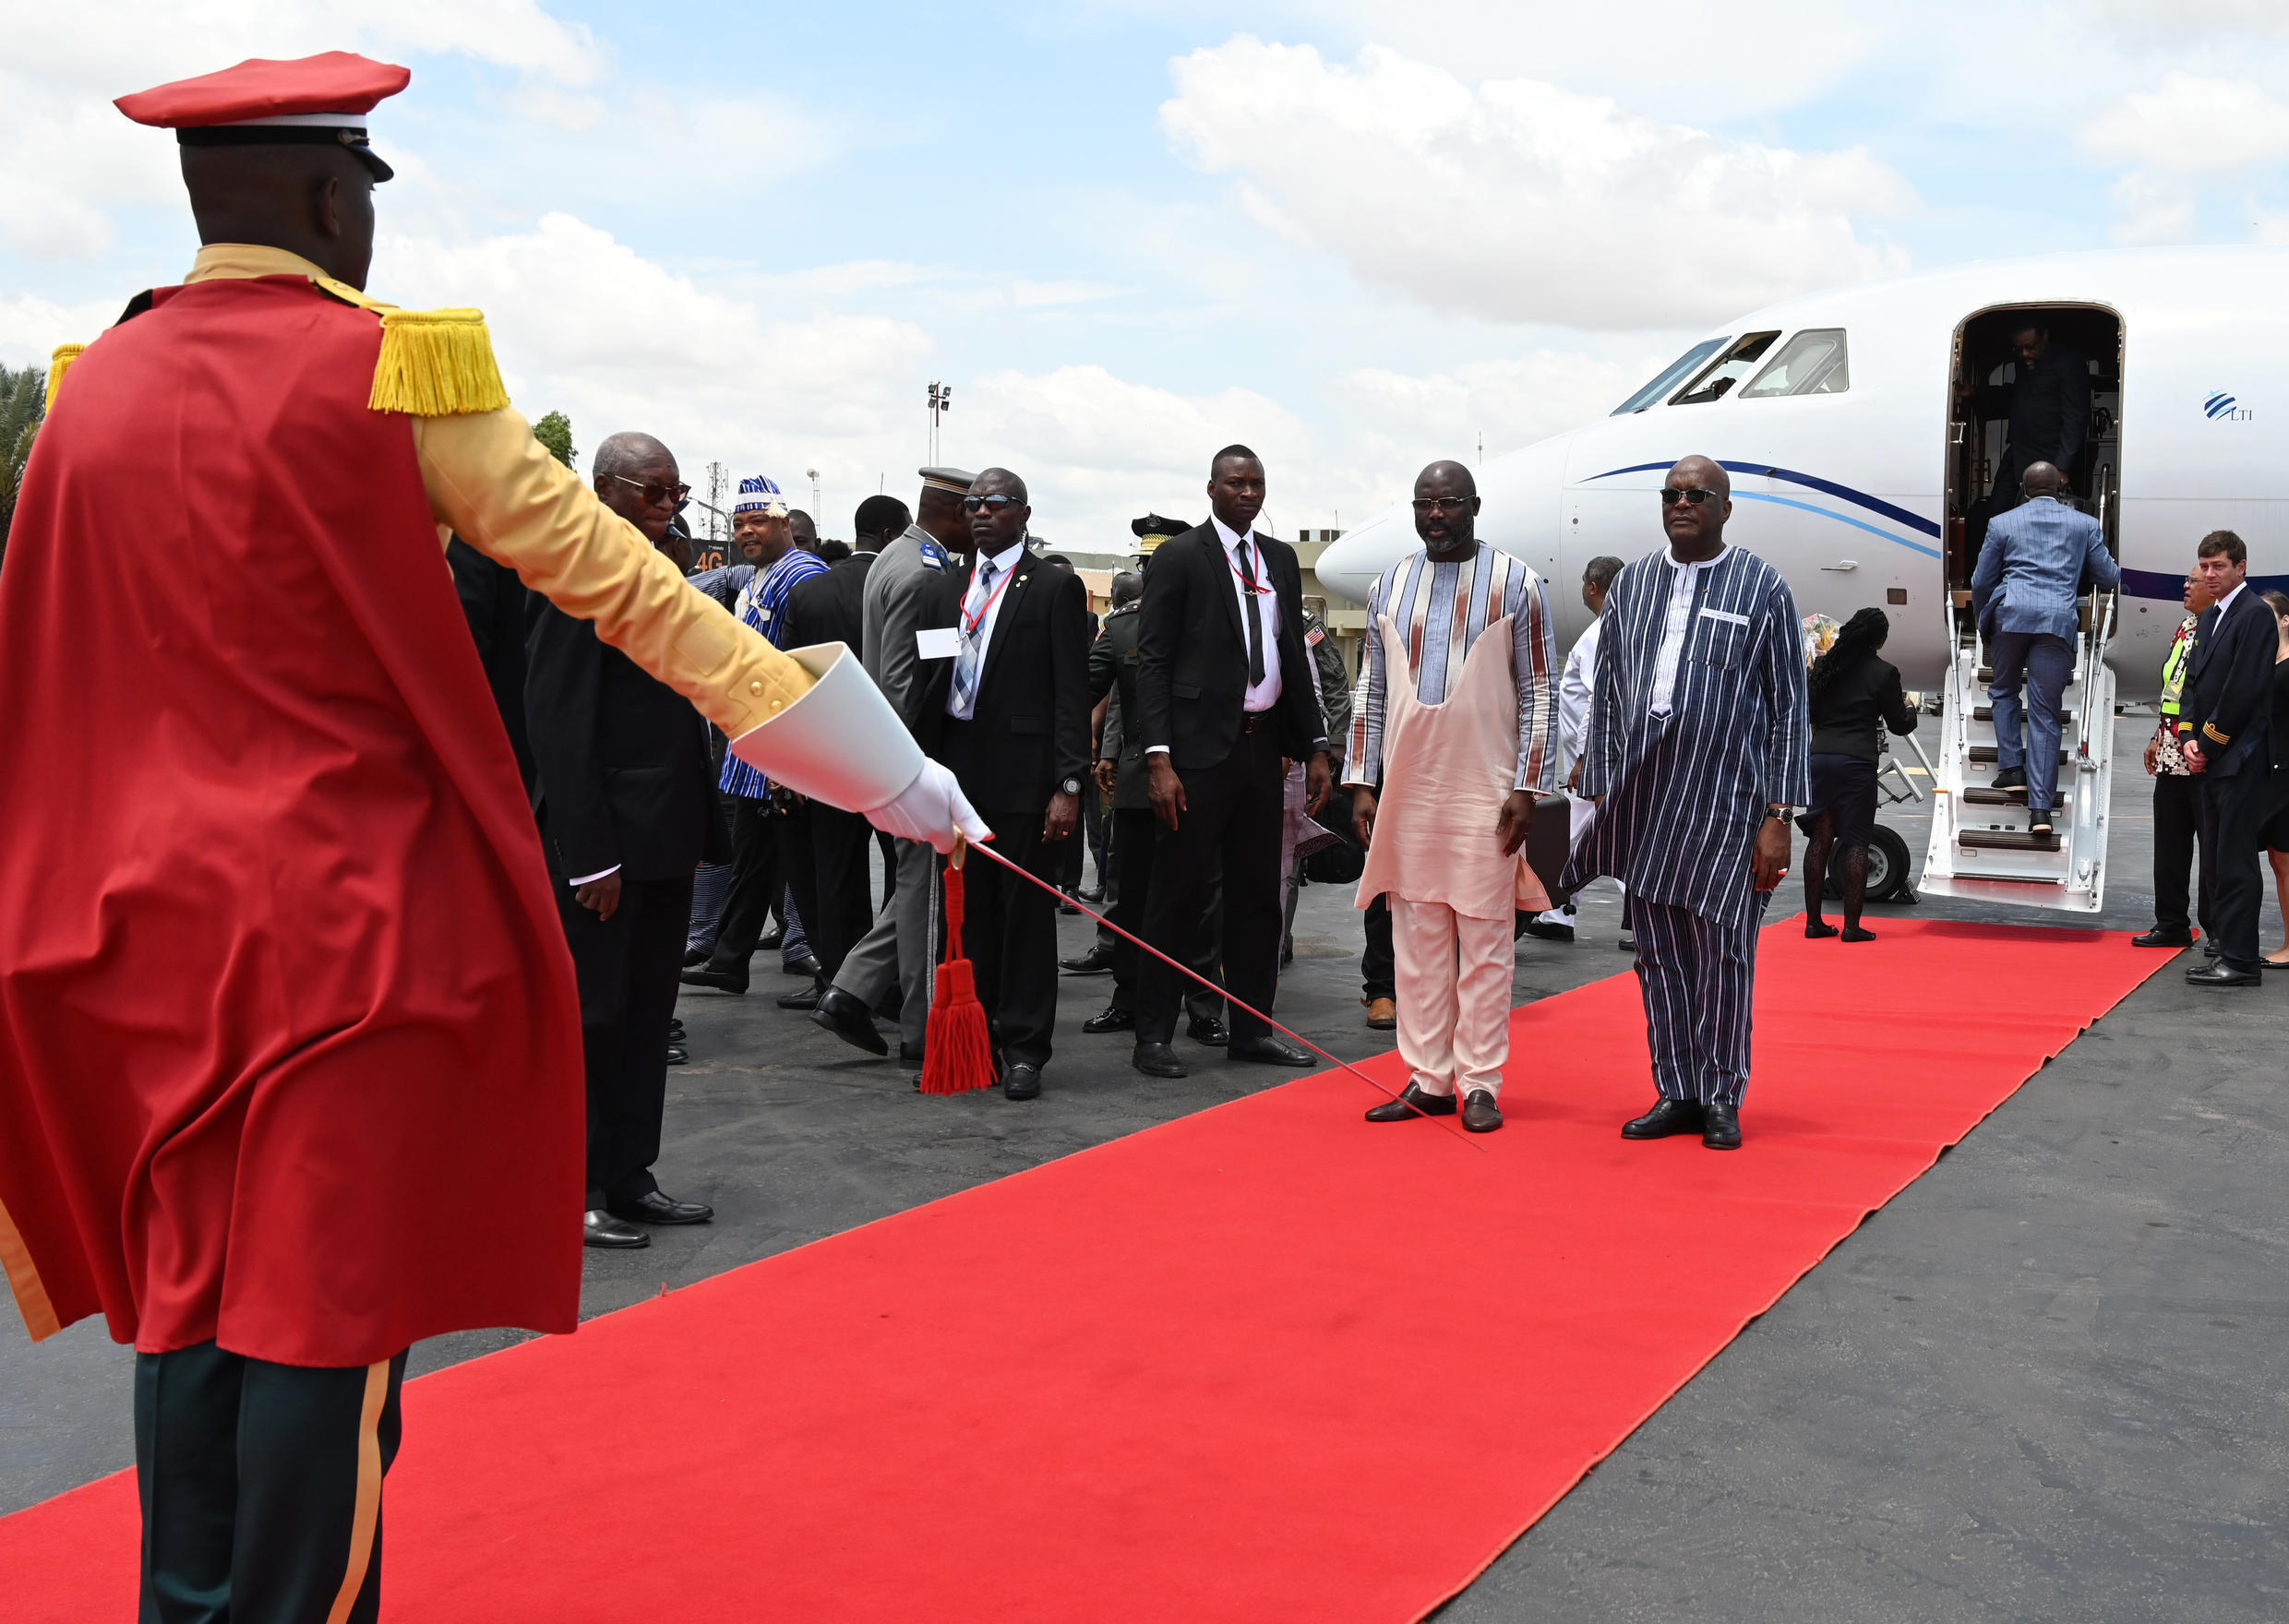 Weah arrives in Ouagadougou to meet President Roch Marc Christian Kabore, the private jet owned by Bonkoungou is pictured in the background, 13 September 2019.